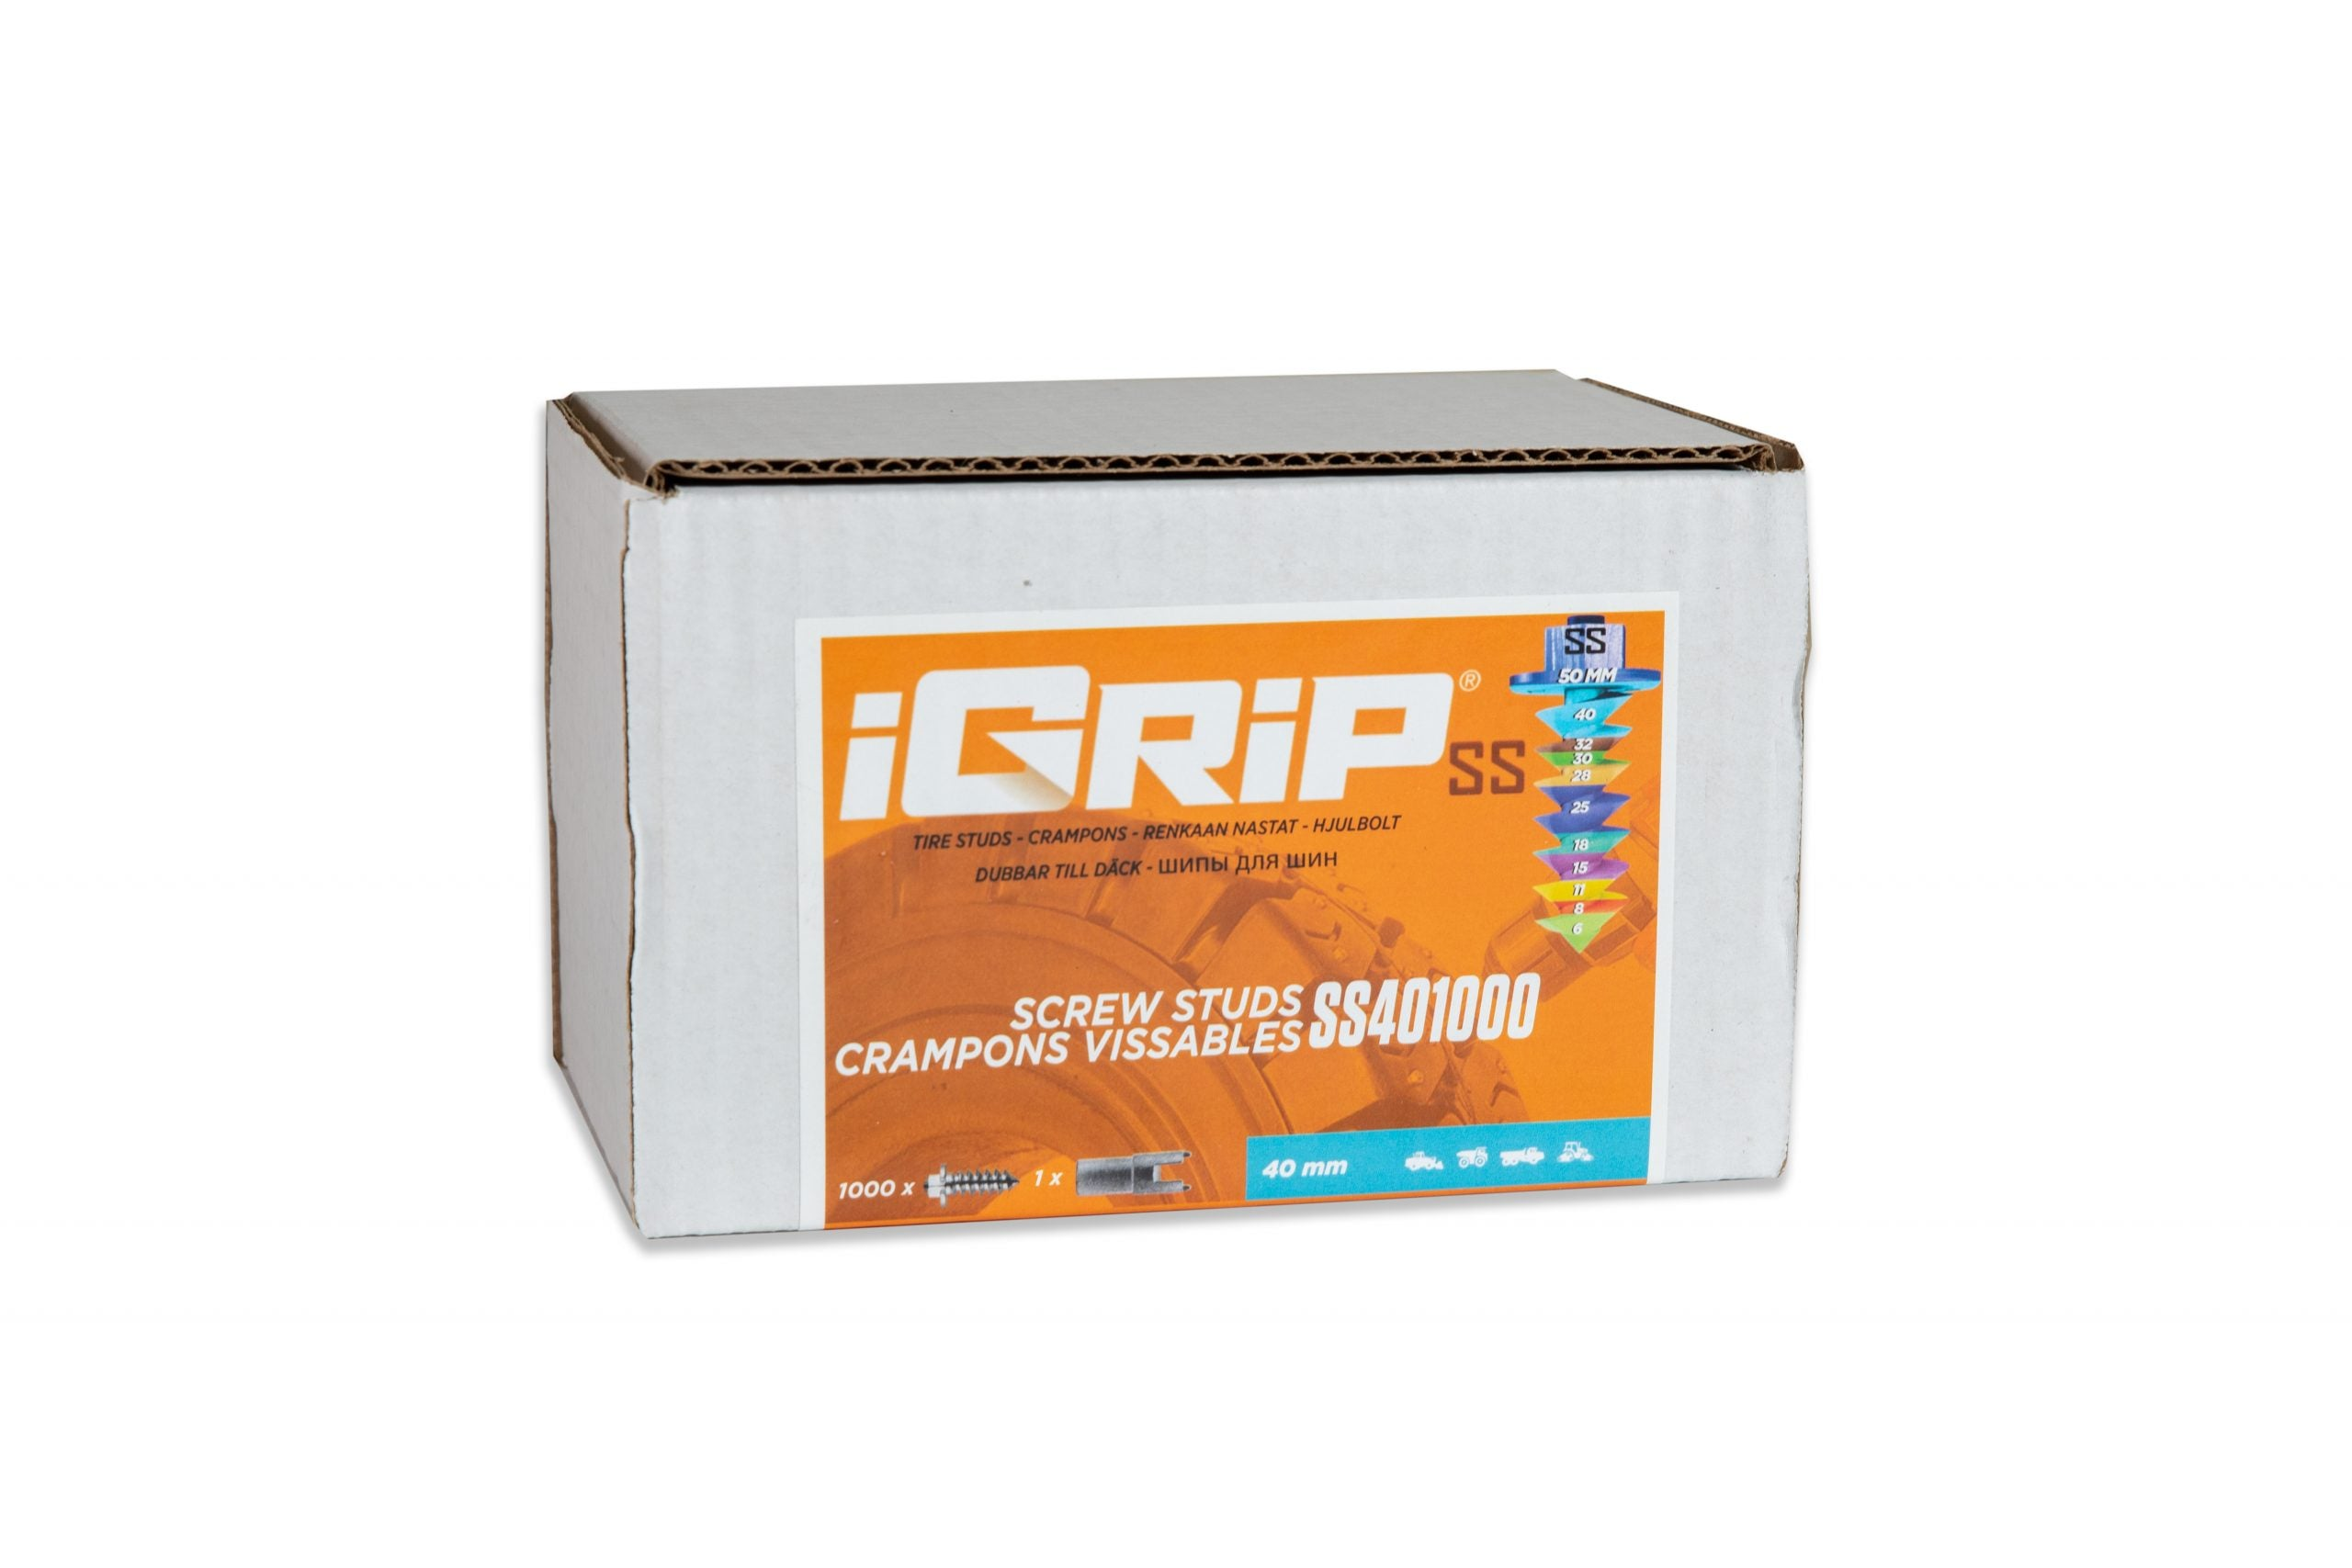 SS-40 Shouldered iGrip Tire Studs